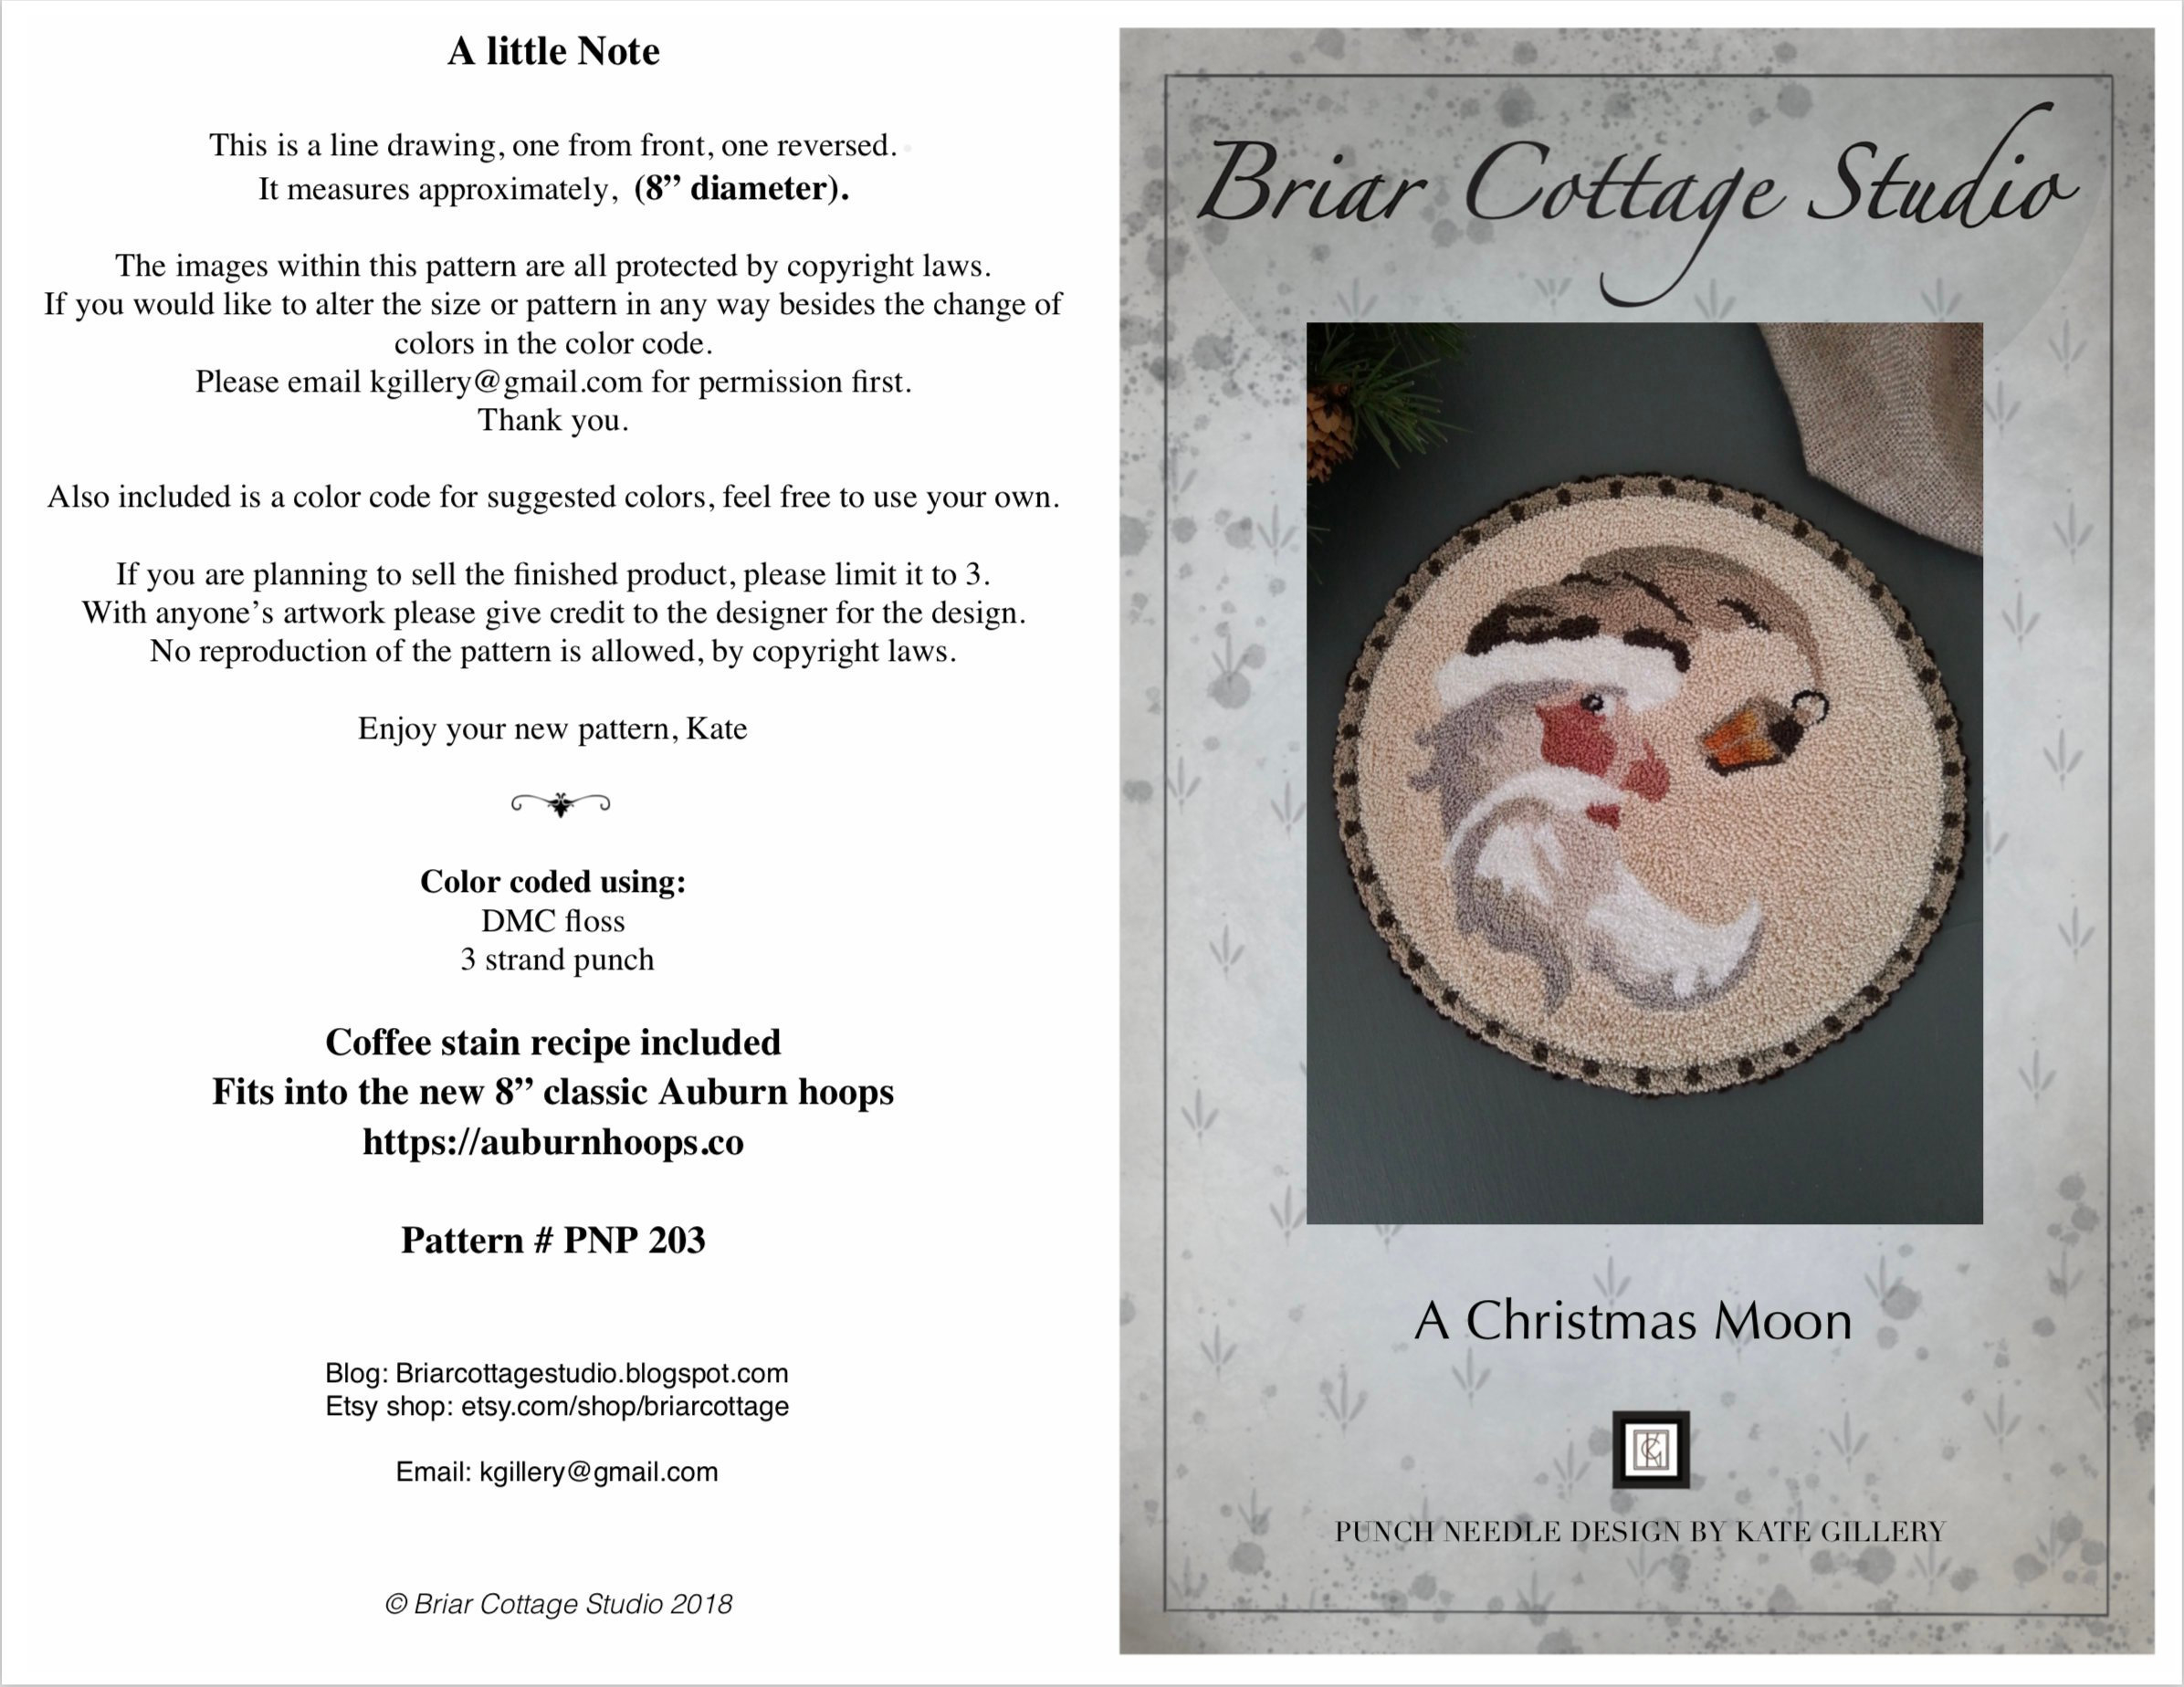 Free Punch Needle Embroidery Patterns Download Punch Needle Embroidery Pattern A Christmas Moon Pnp203 Kate Gillery At Briar Cottage Studio